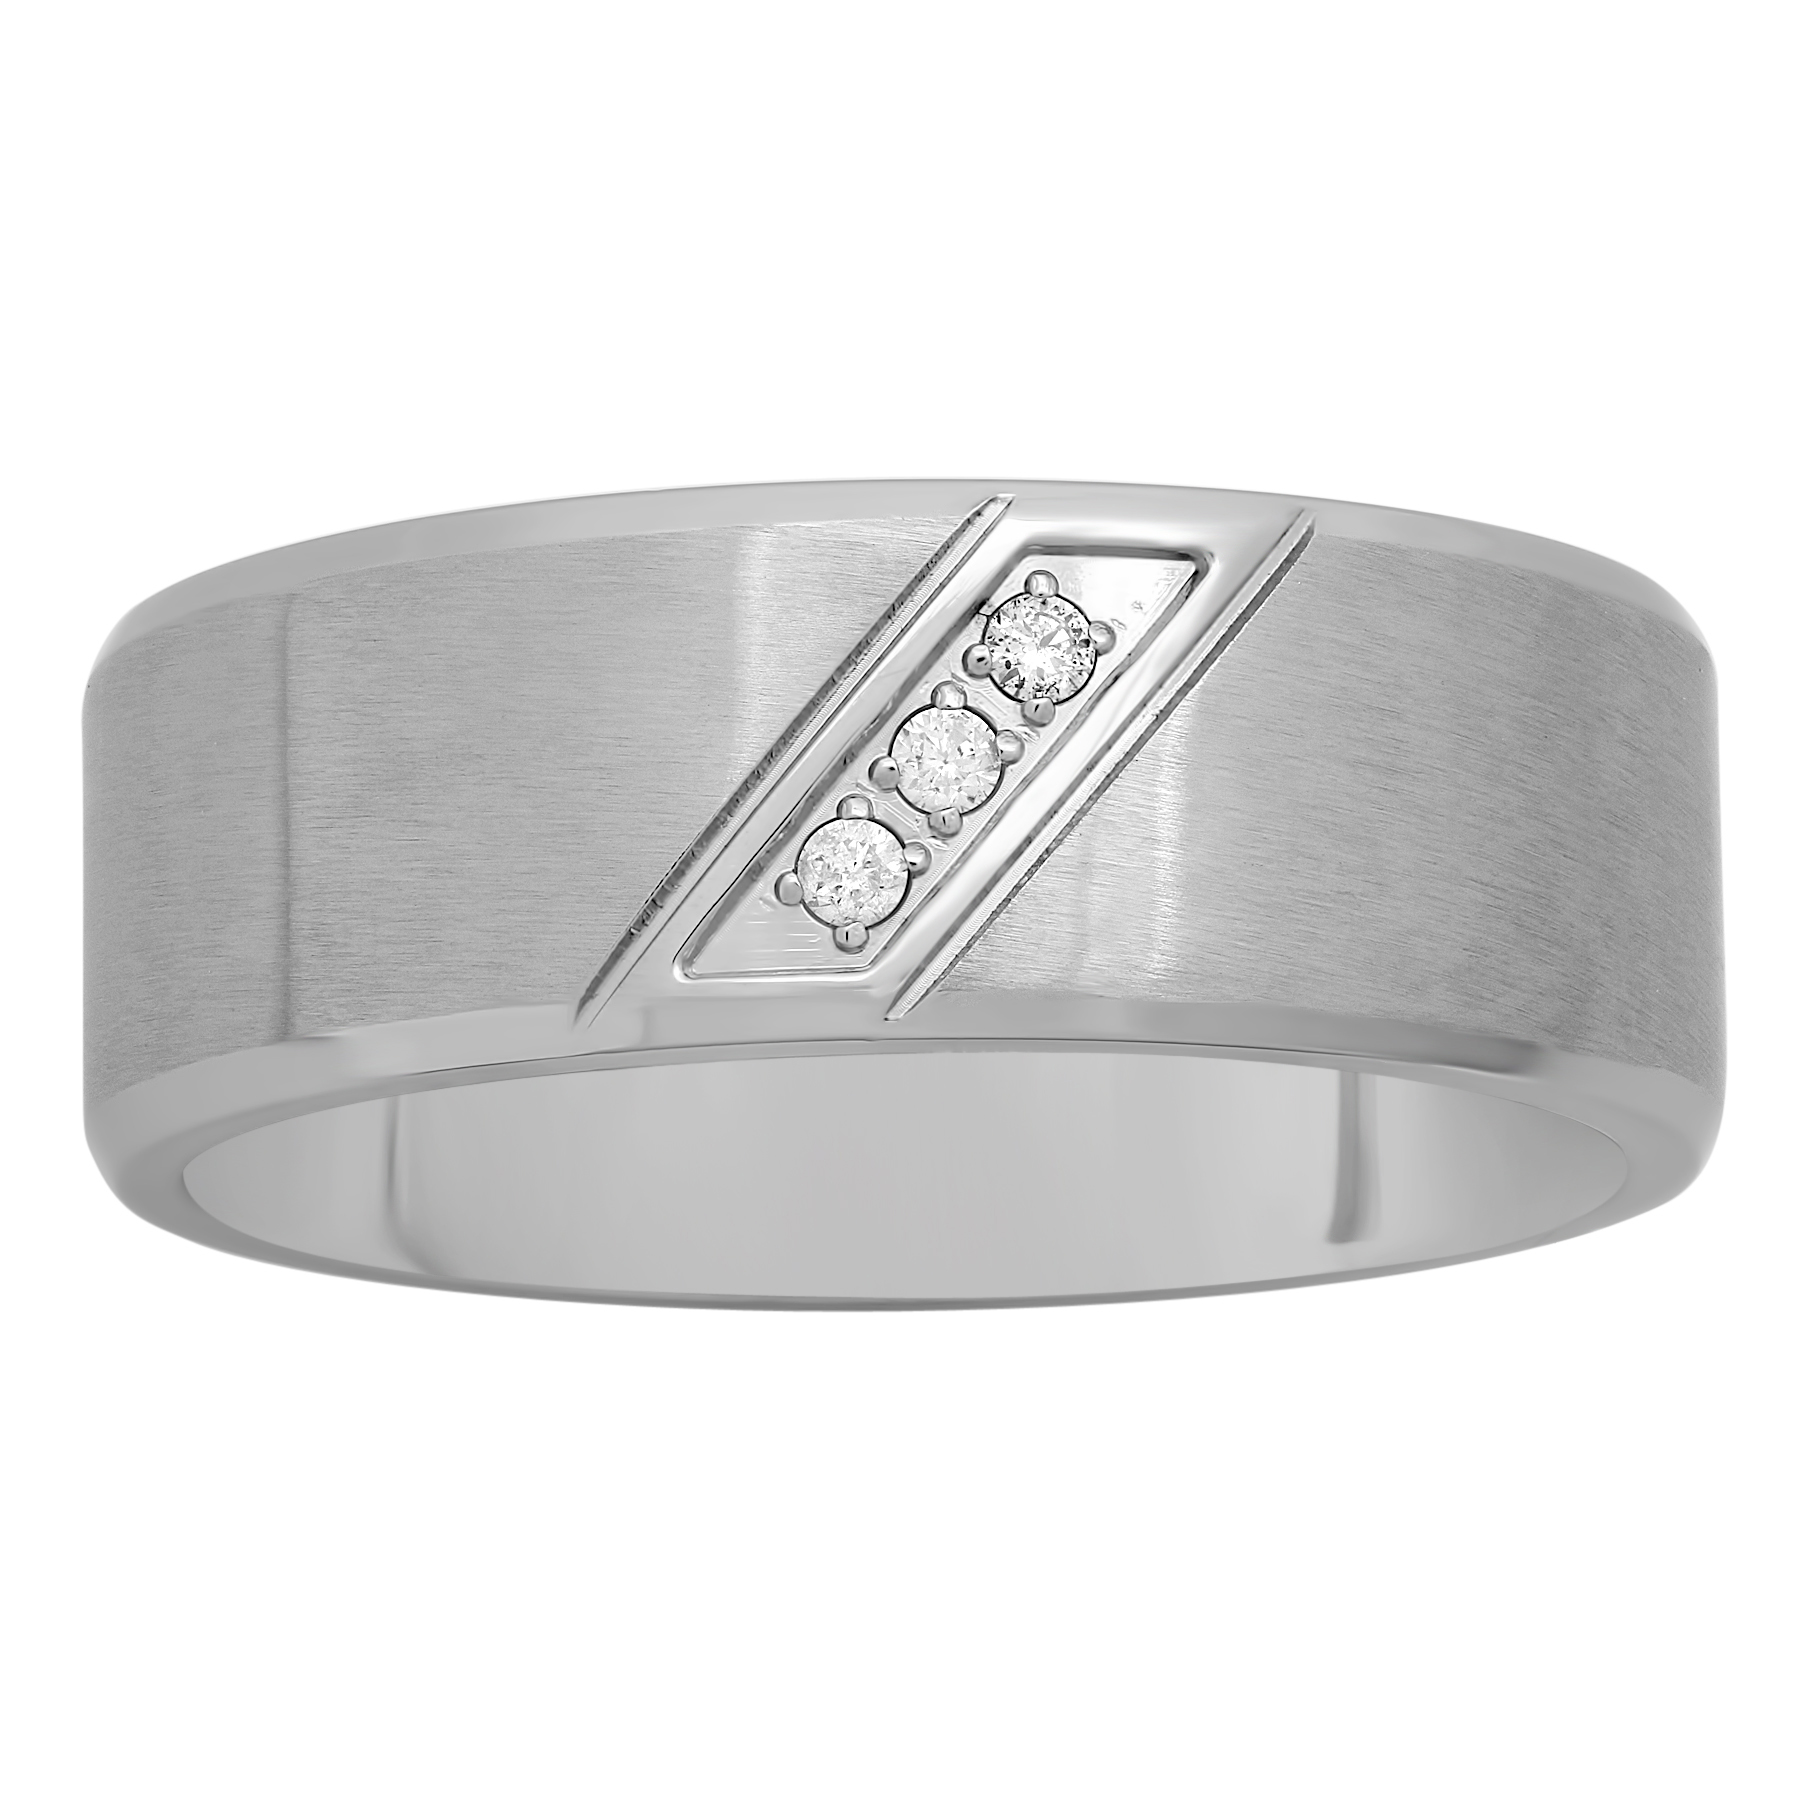 Stainless Steel Diamond Accent Slant 8MM Band PartNumber: 3ZZVA98307912P MfgPartNumber: TS5021/6